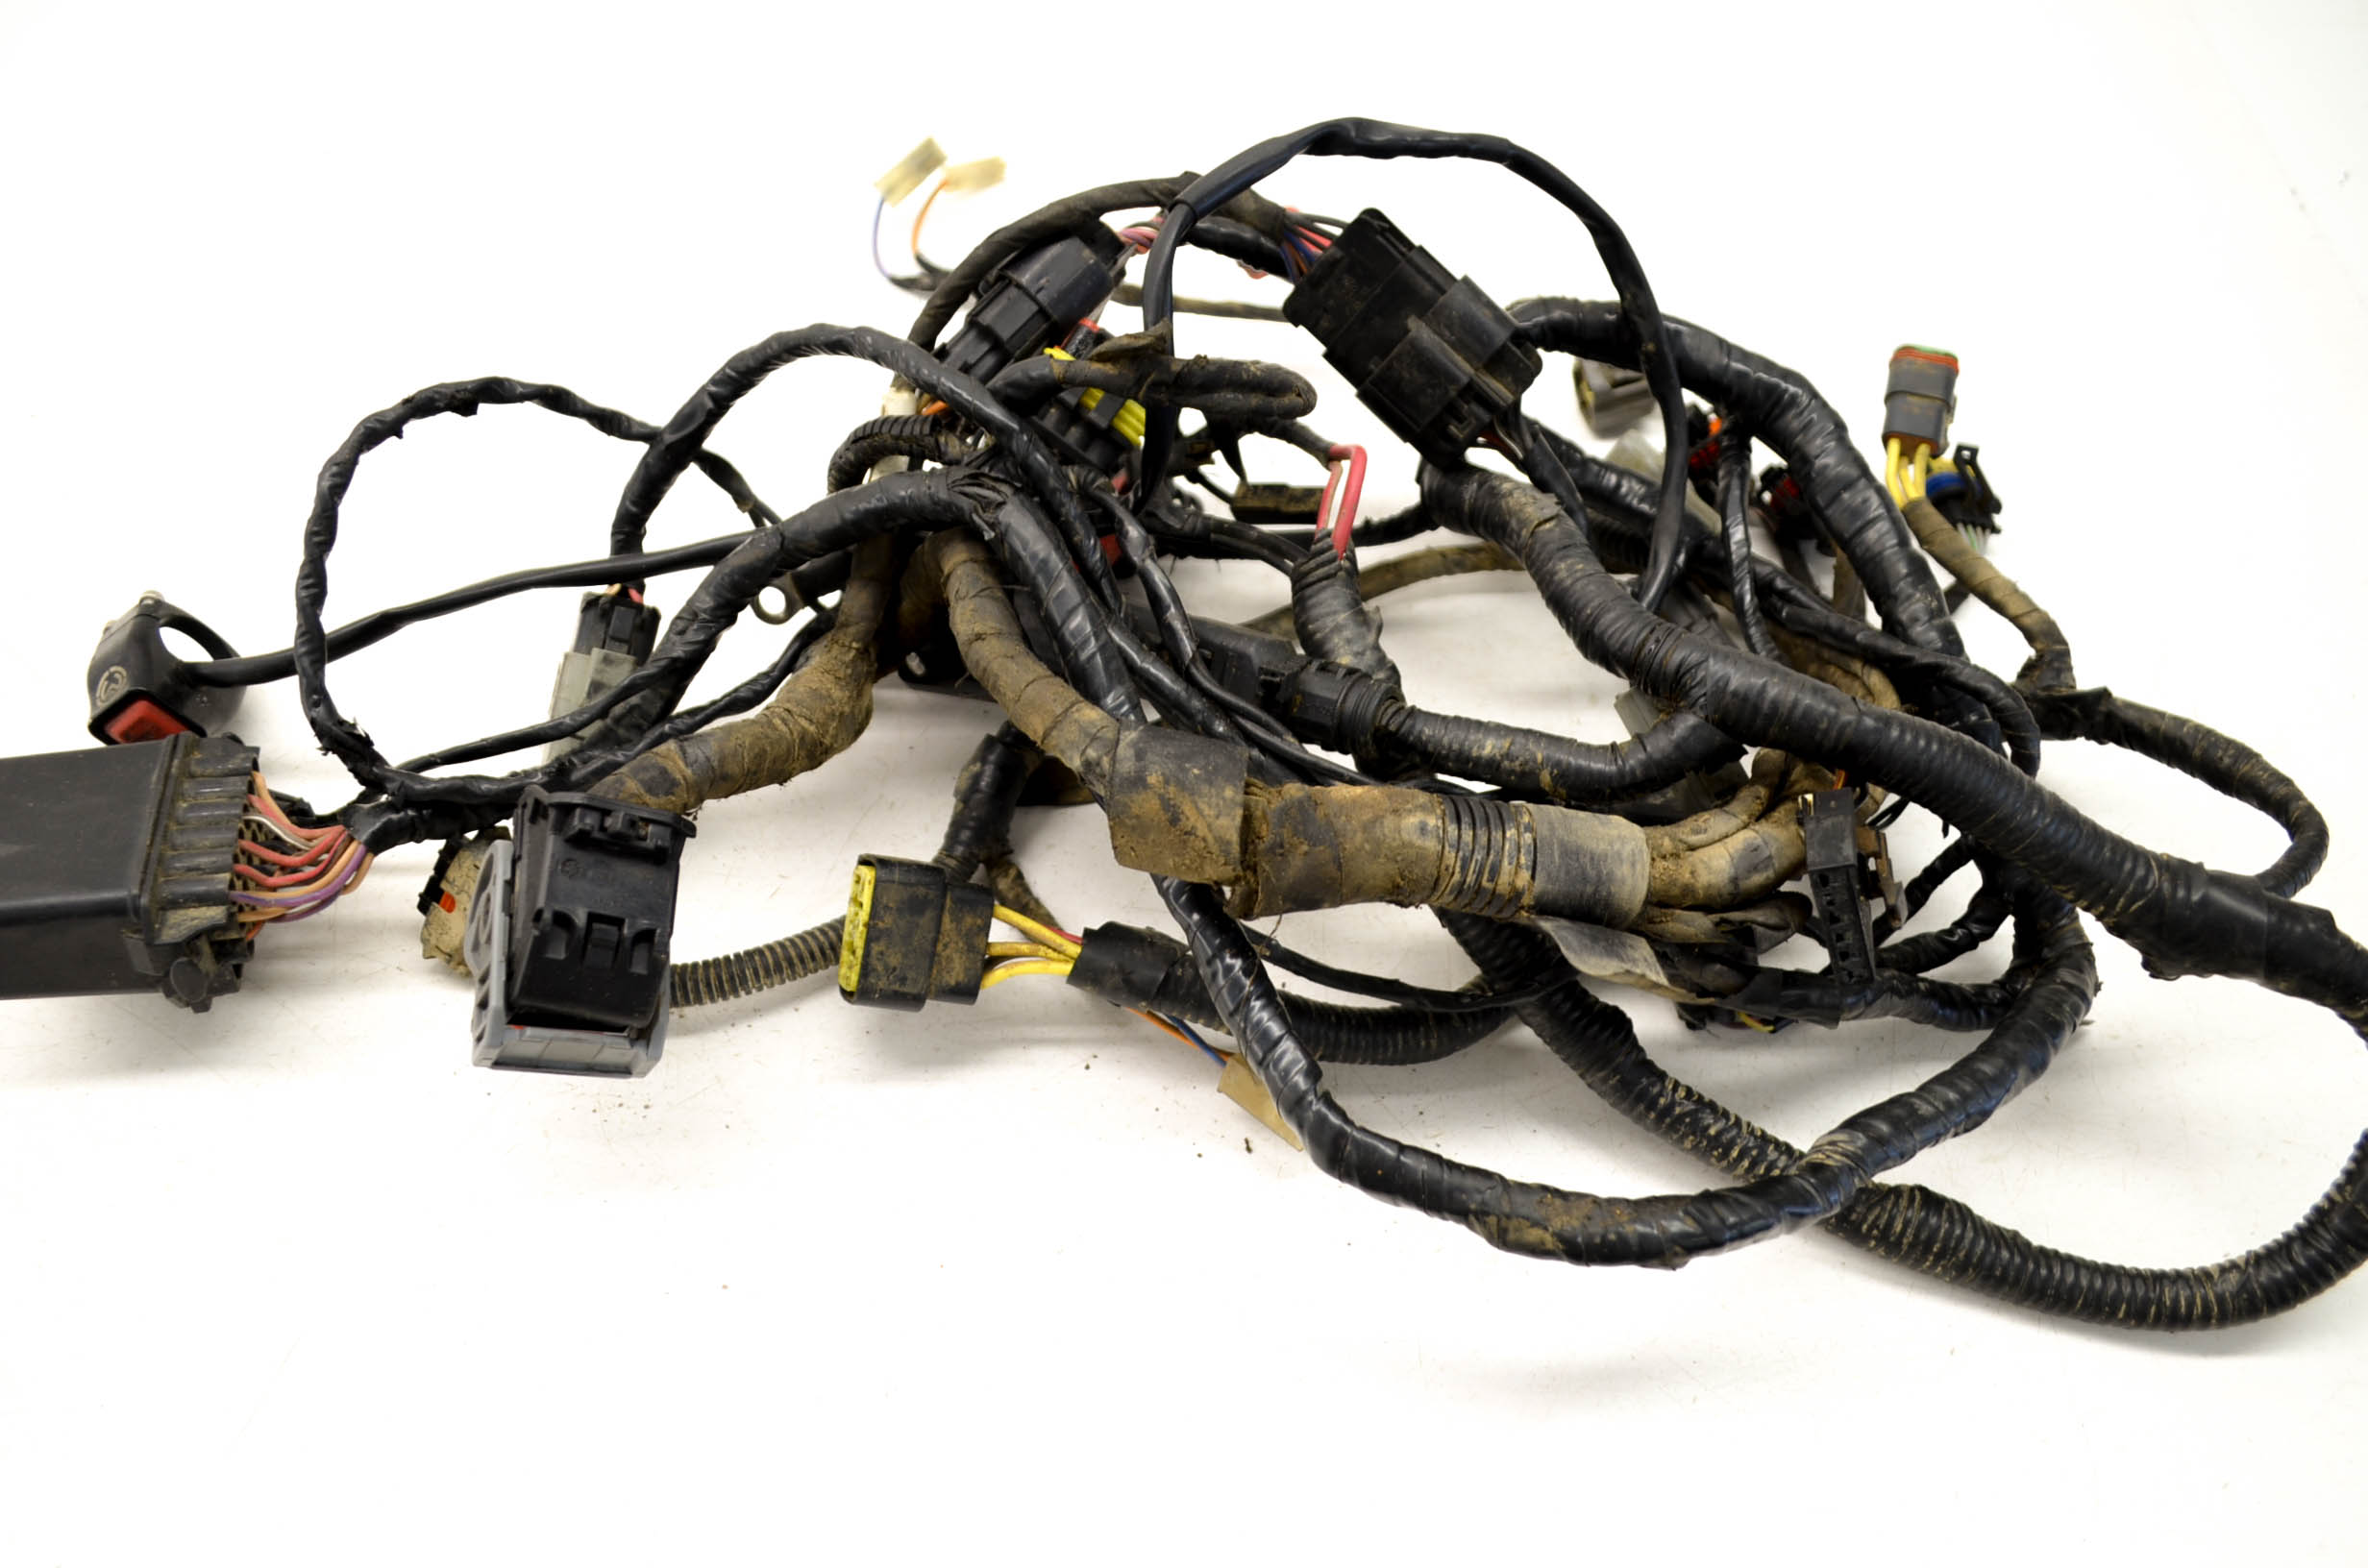 12 Can-Am DS450 Wire Harness Electrical Wiring